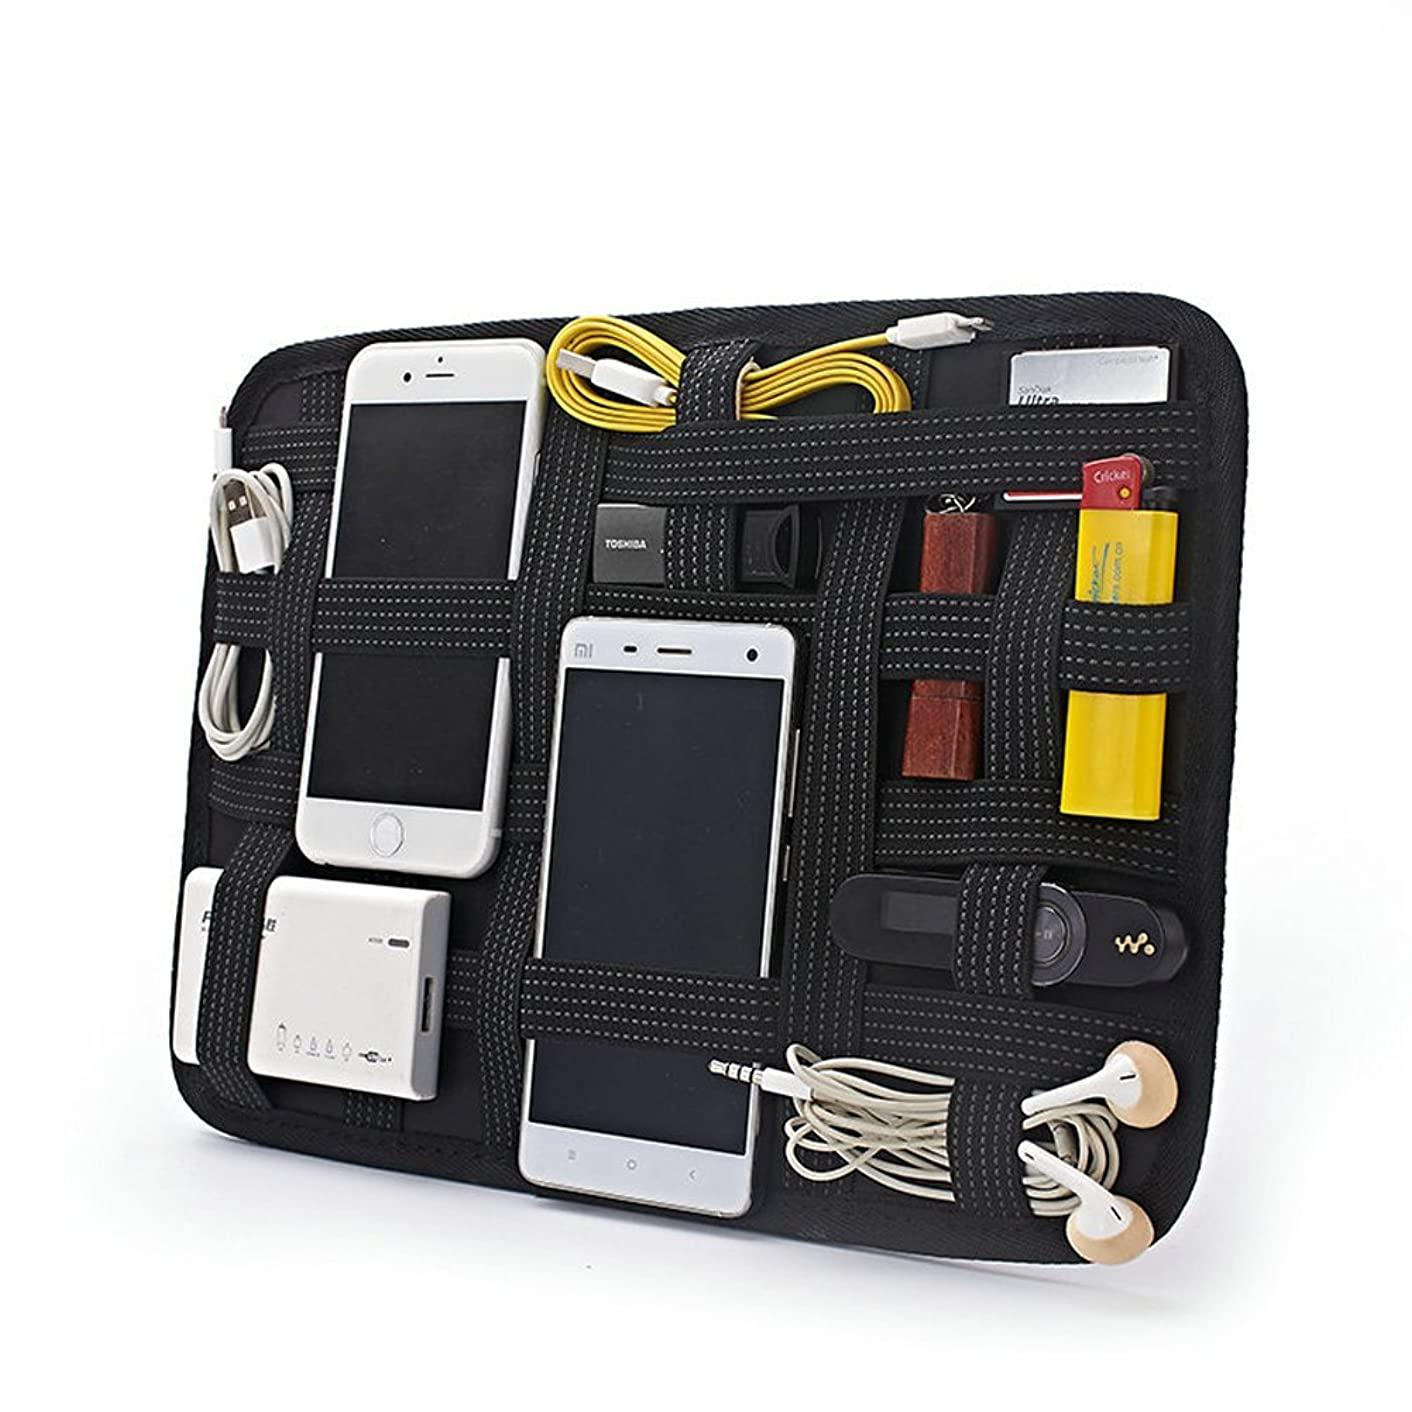 SOXDirect Electronics Organizer Board Digital Device Elastic Organizer Bag for Cord Gadget Power Bank Charging Cable Phones Batteries Mouse Cards